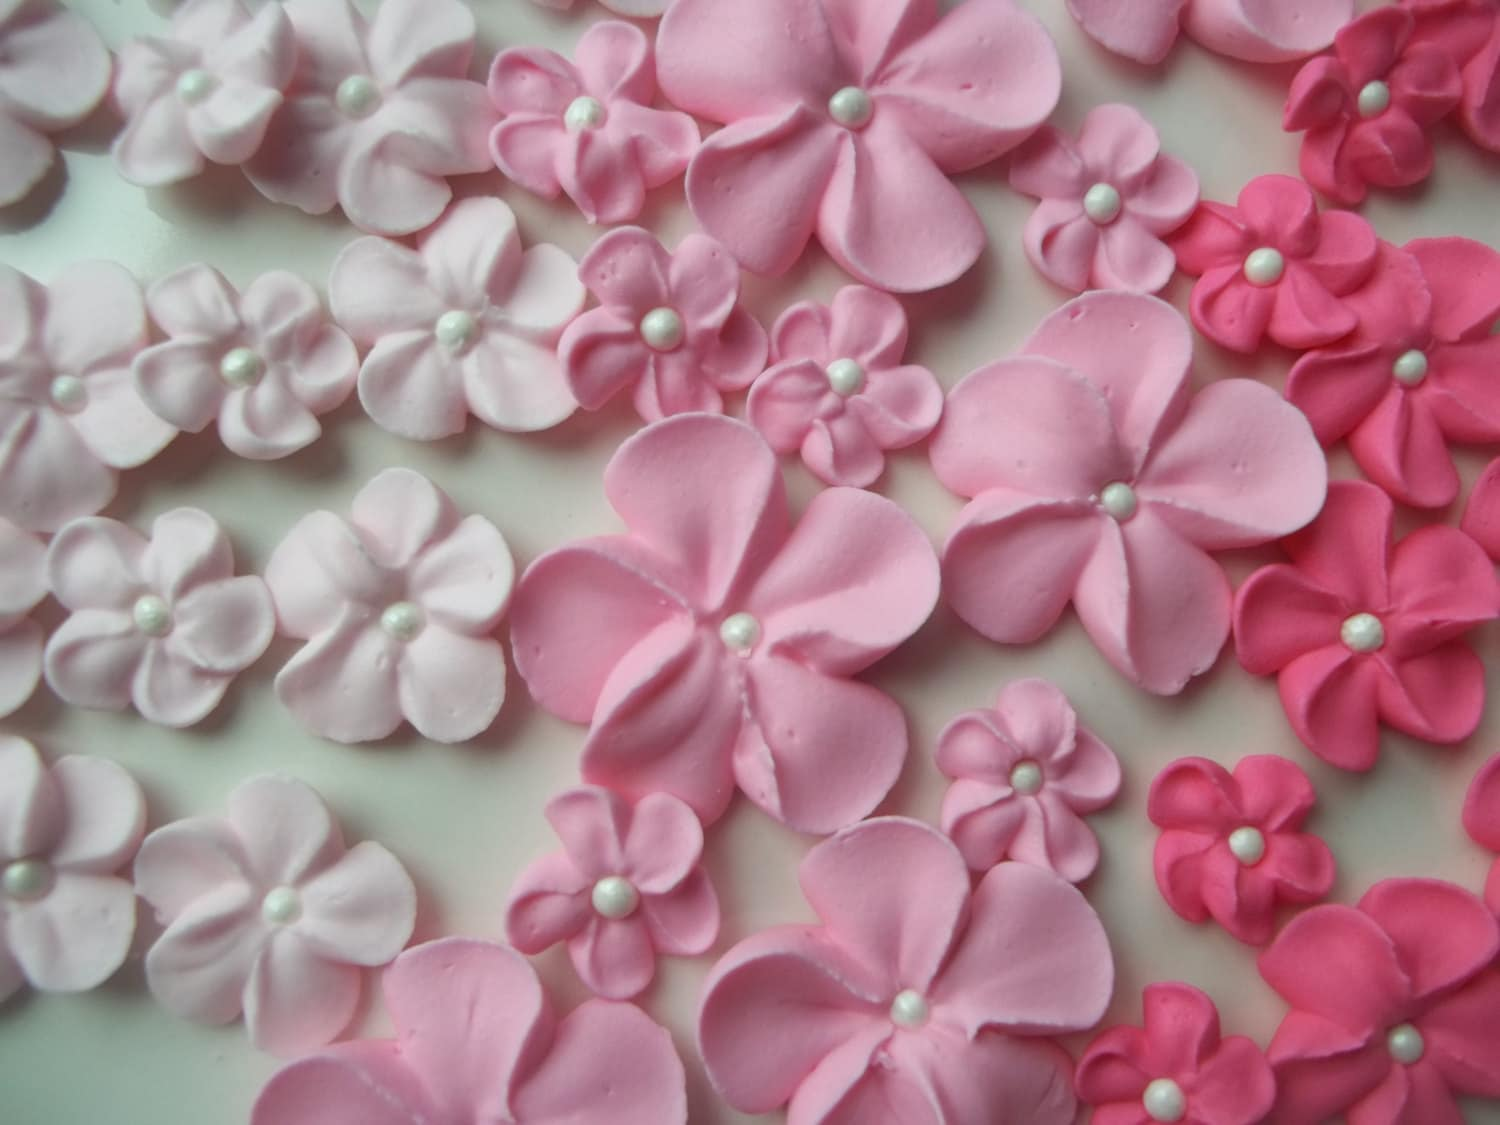 Shades of pink ombre flowers Made to Order Edible cake